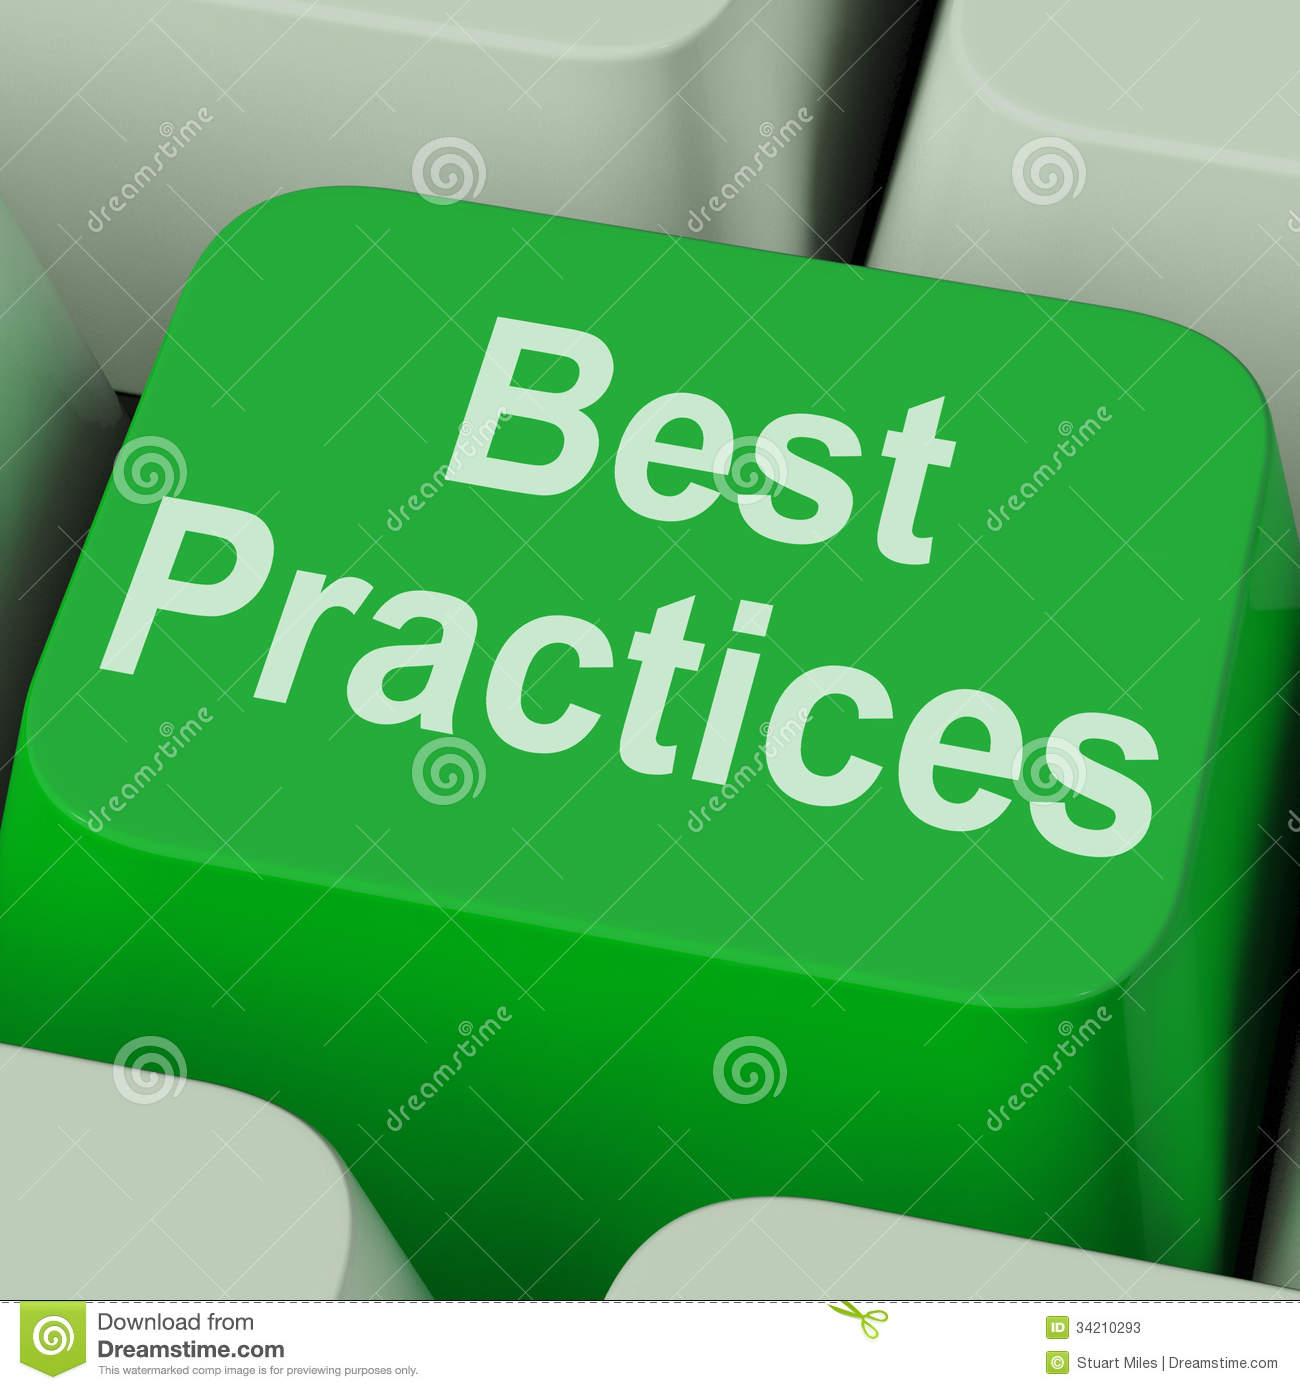 Best practices key shows improving business quality stock download best practices key shows improving business quality stock illustration illustration of best method reheart Choice Image